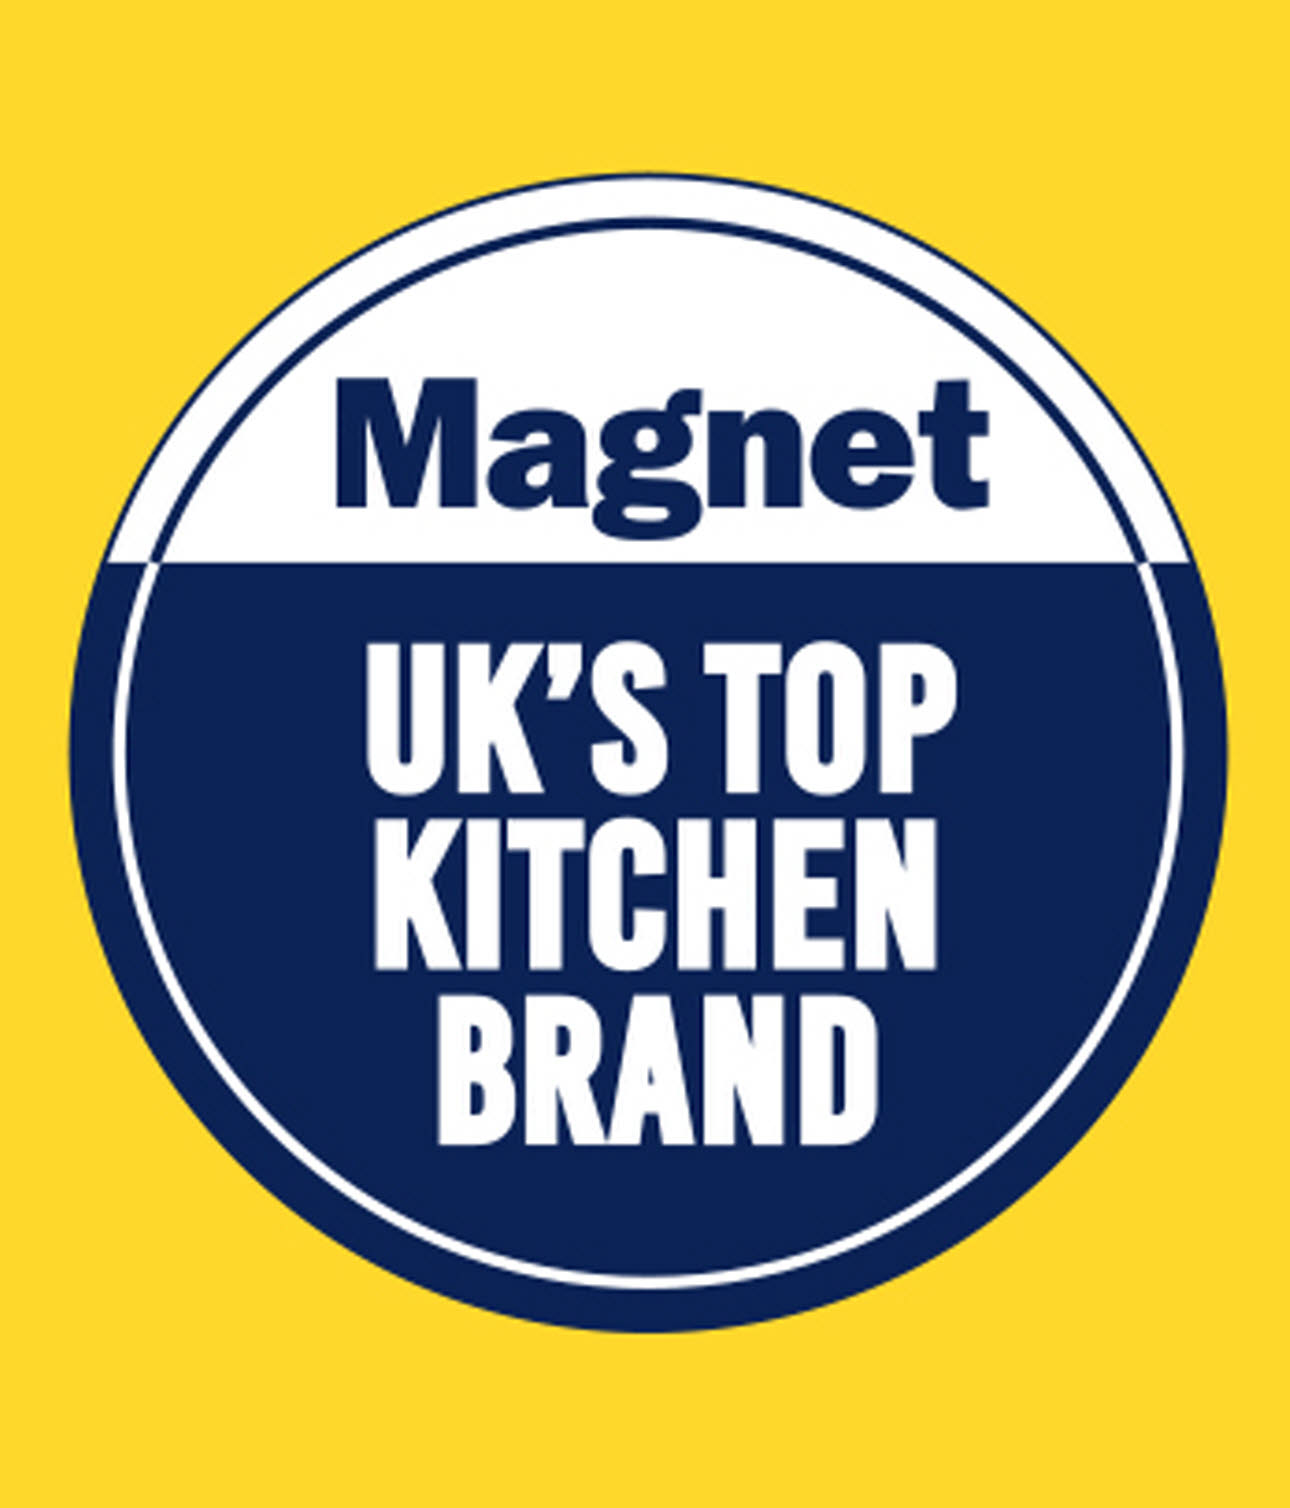 Magnet, UK's top kitchen brand blue and yellow logo